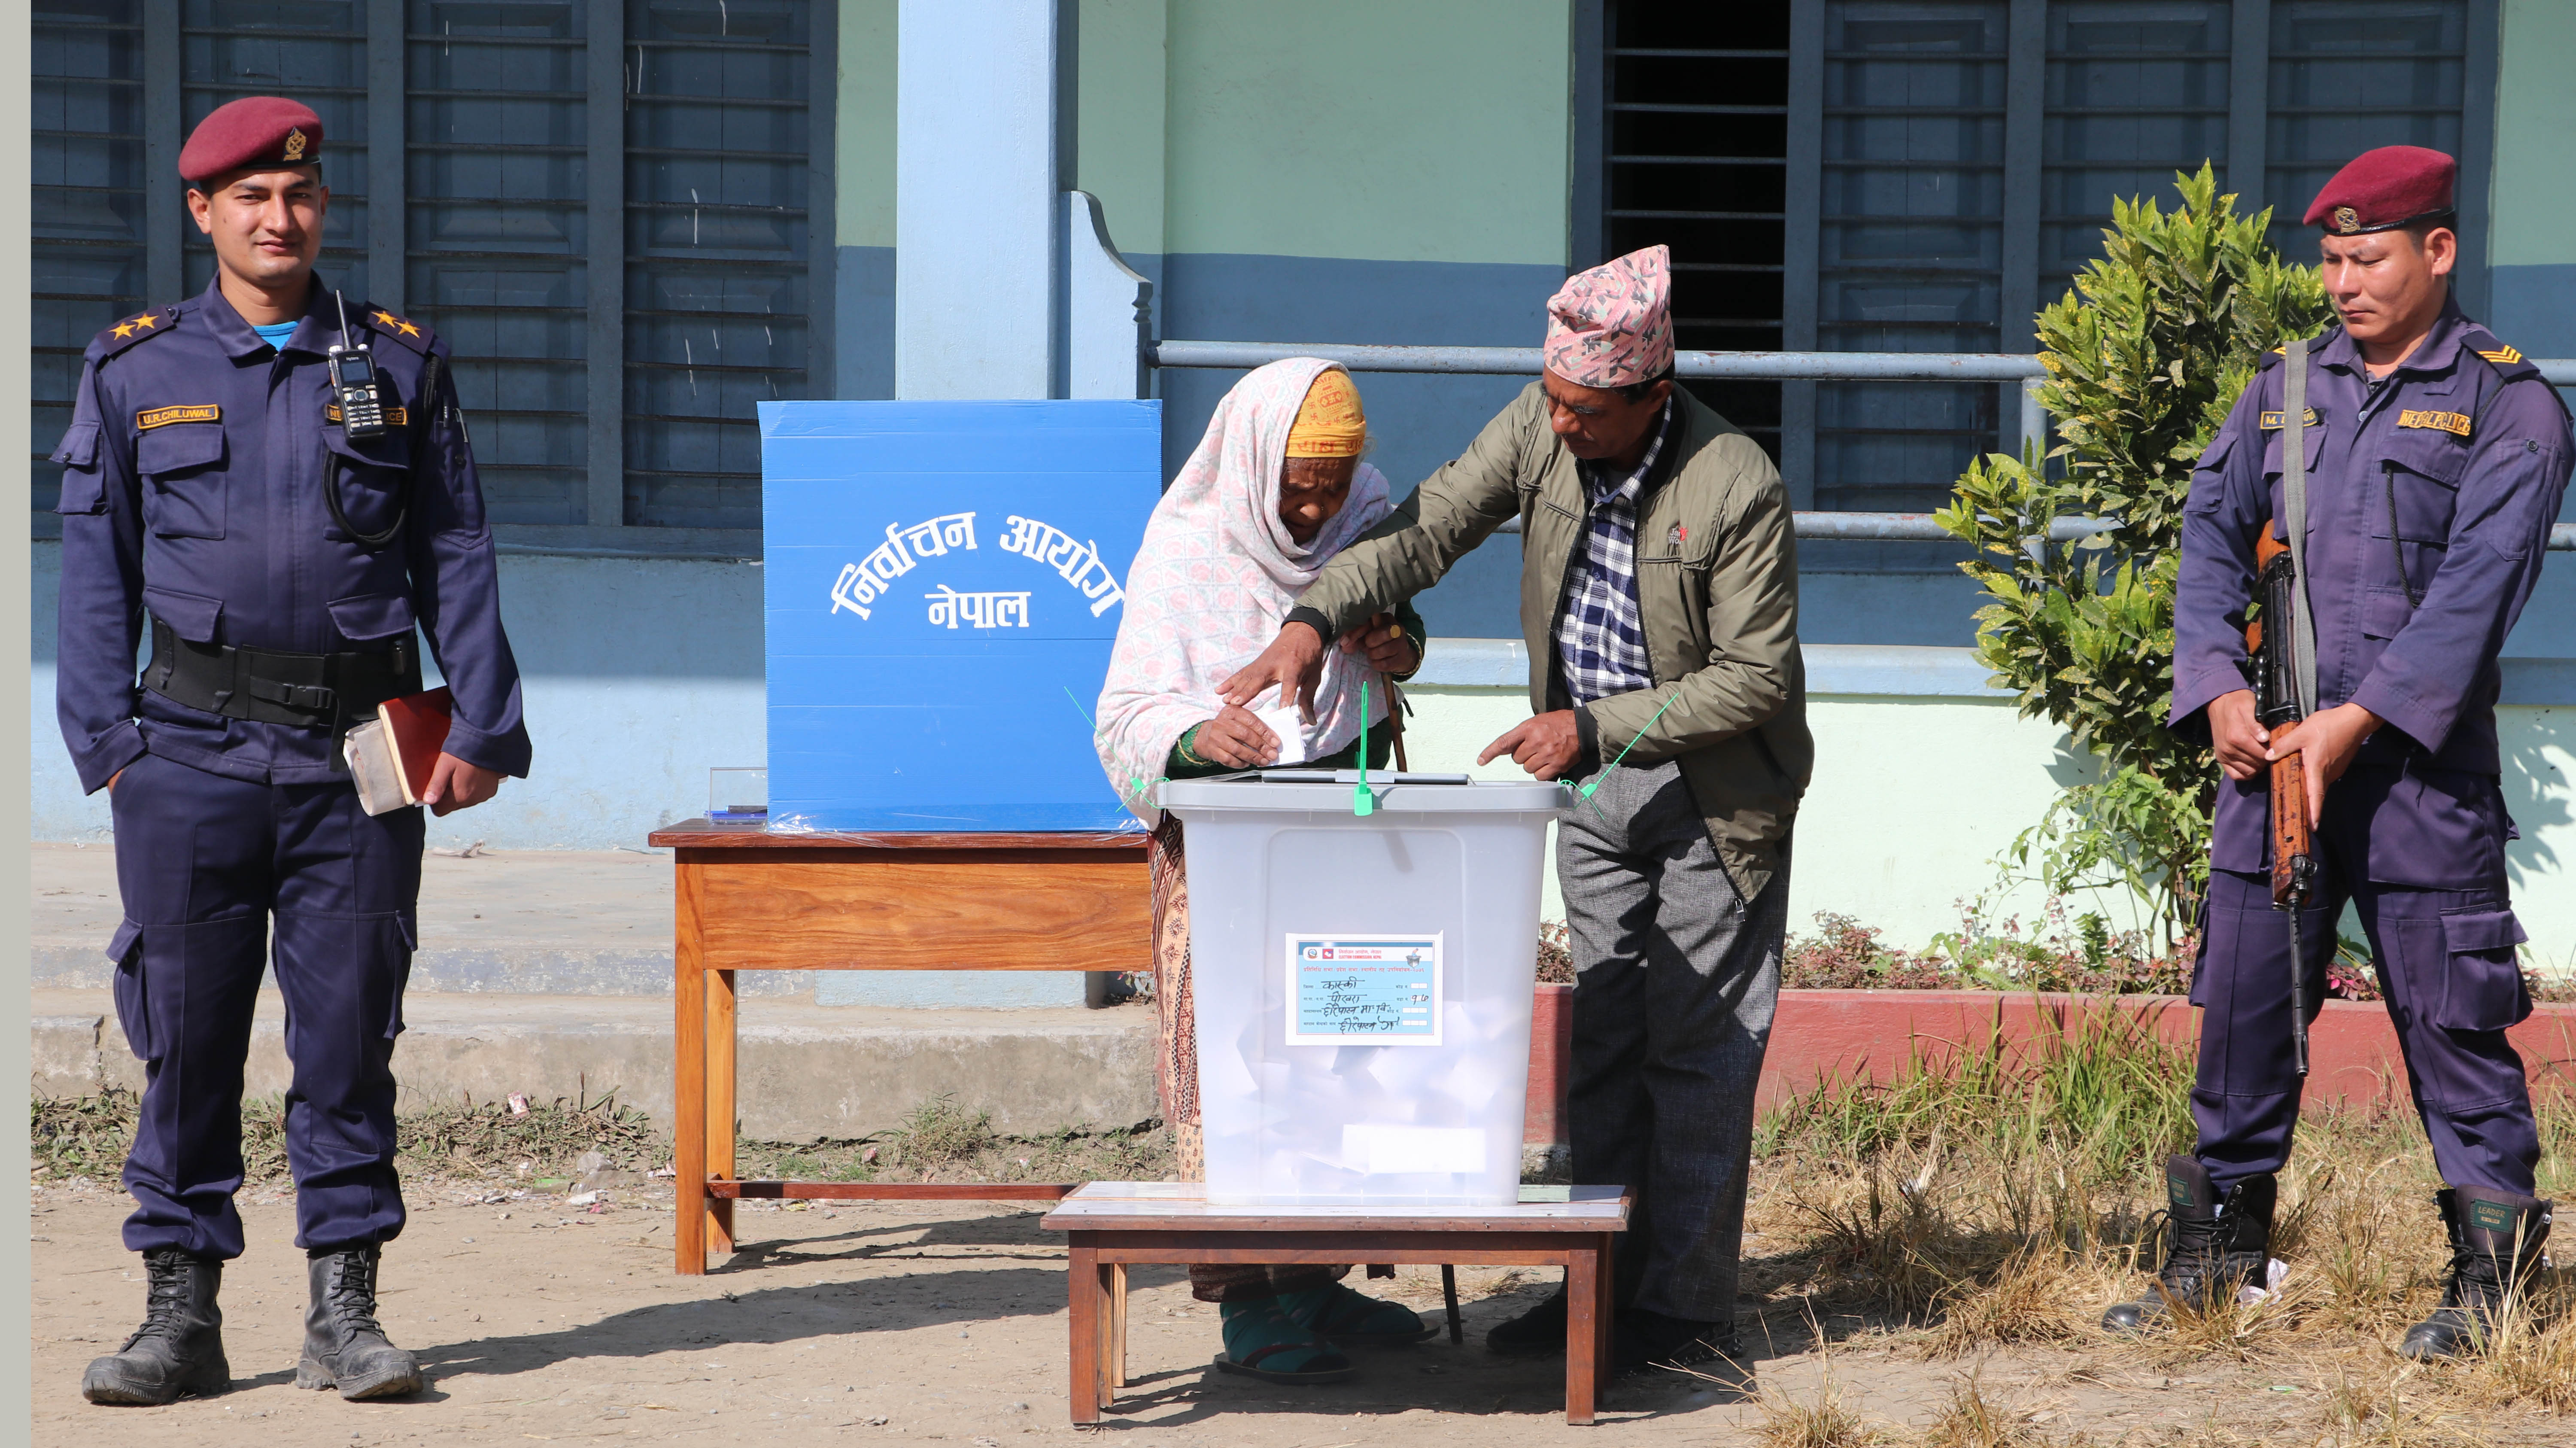 By election nepal